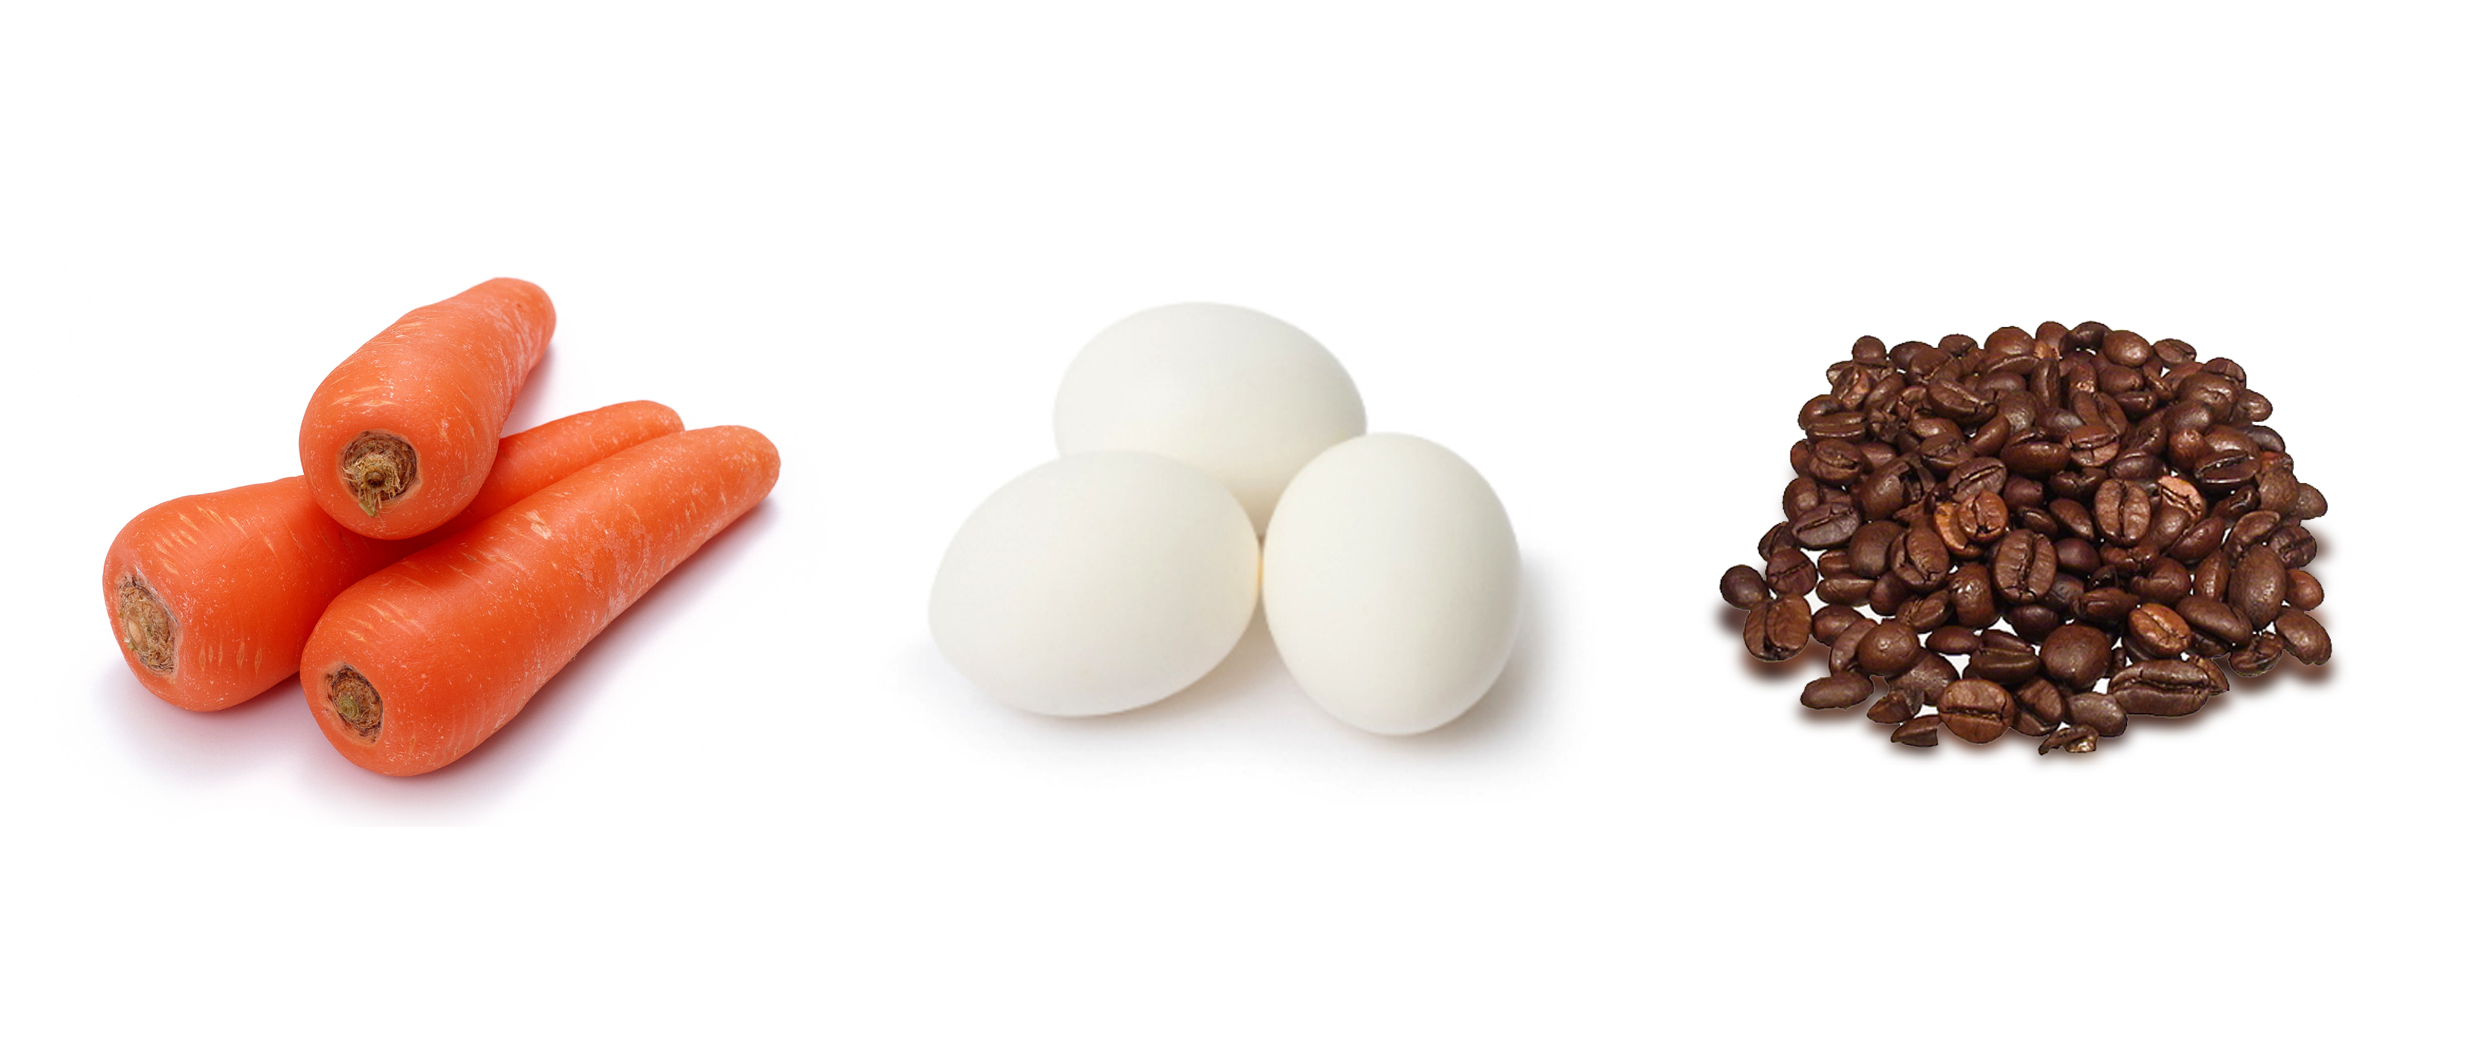 carrot egg and coffee bean essay By simon khayala, kenya in life, what matters most is how we react when faced with a situation as we begin the new year, i ask us to reflect on whether we are any of the above an egg, a potato, or a coffee bean.